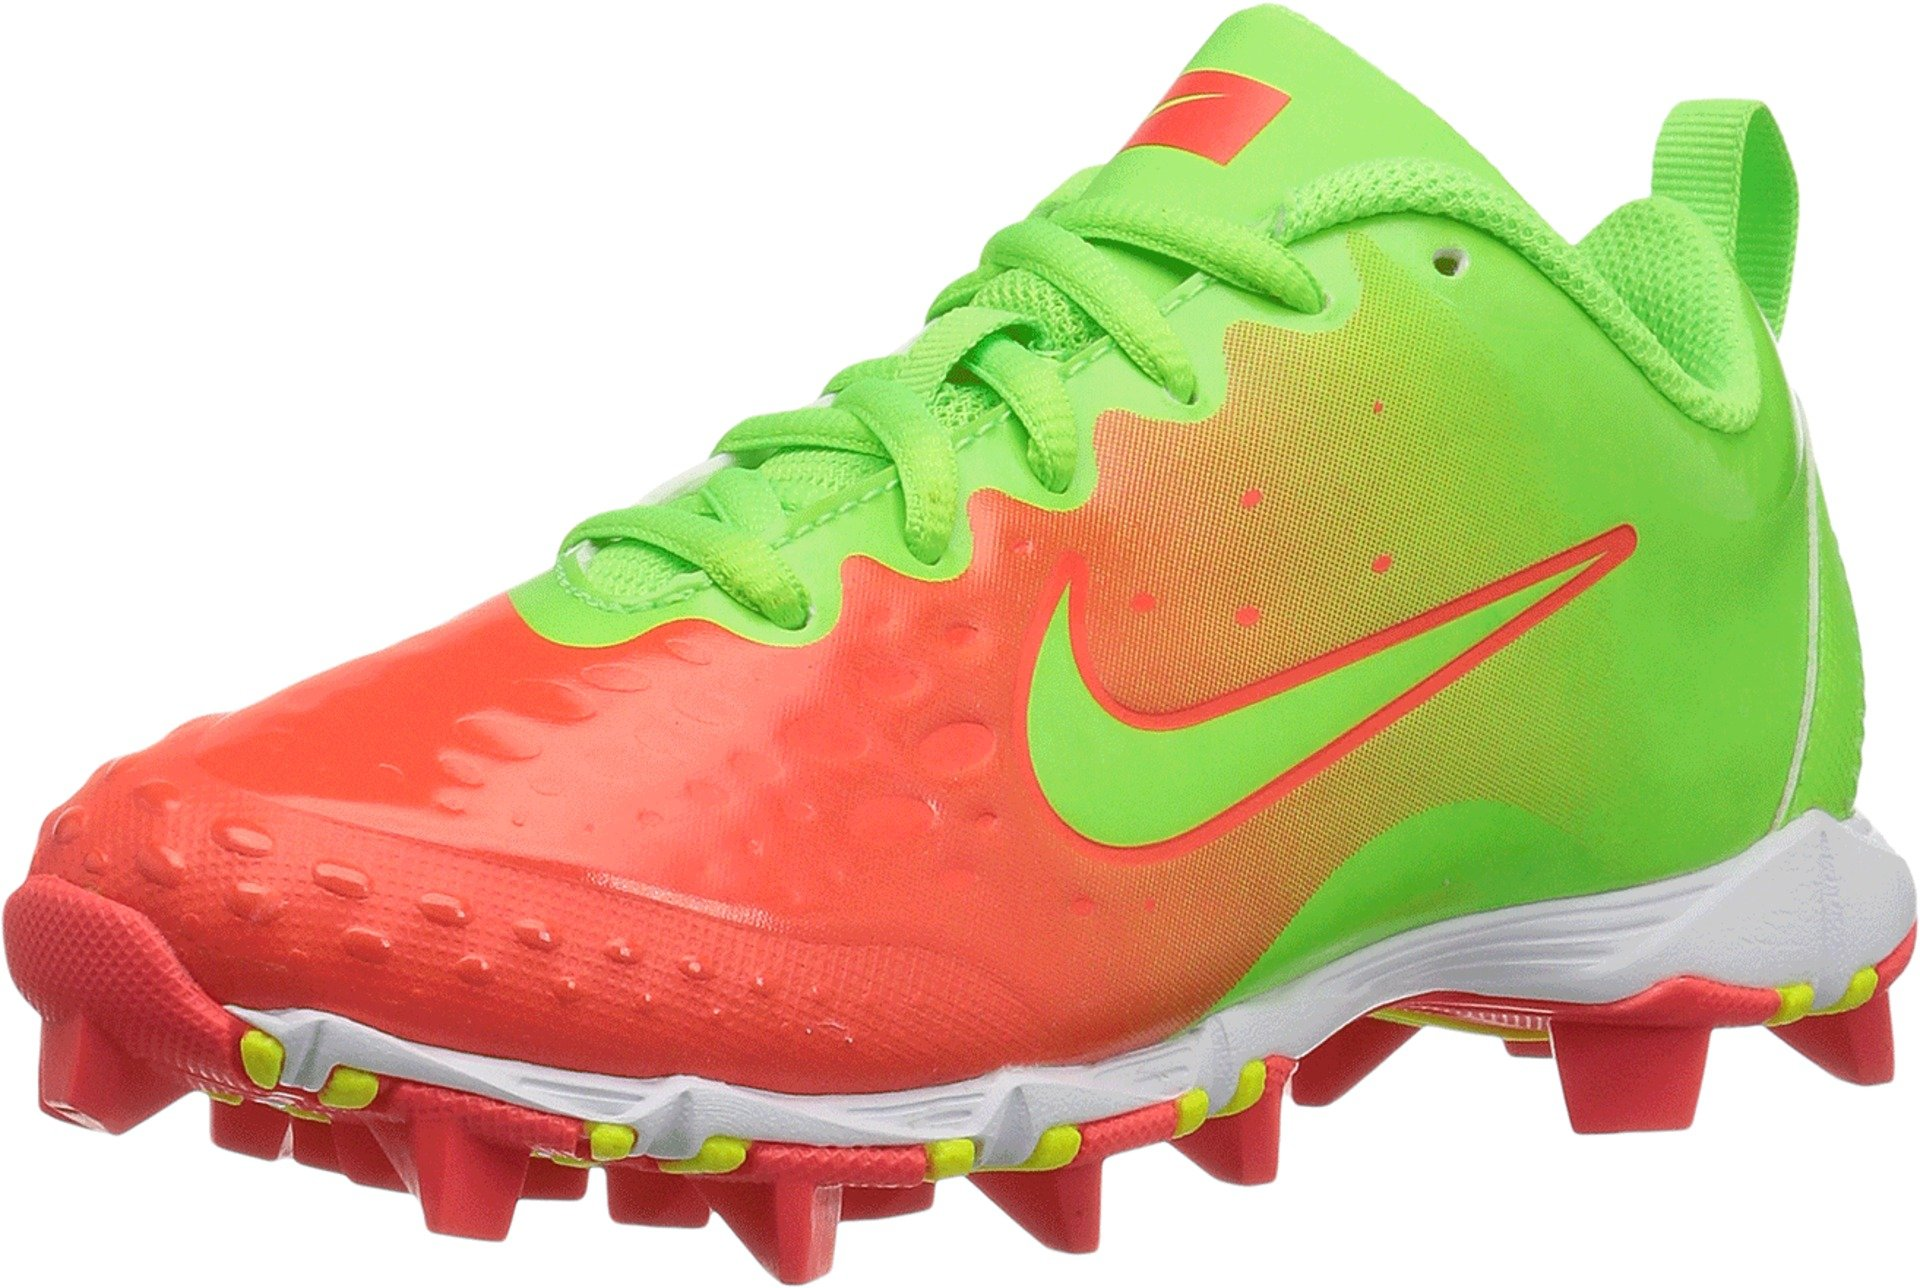 Nike Kids' Hyperdiamond 2 Keystone Softball Cleat,Pink/Green,13K by Nike